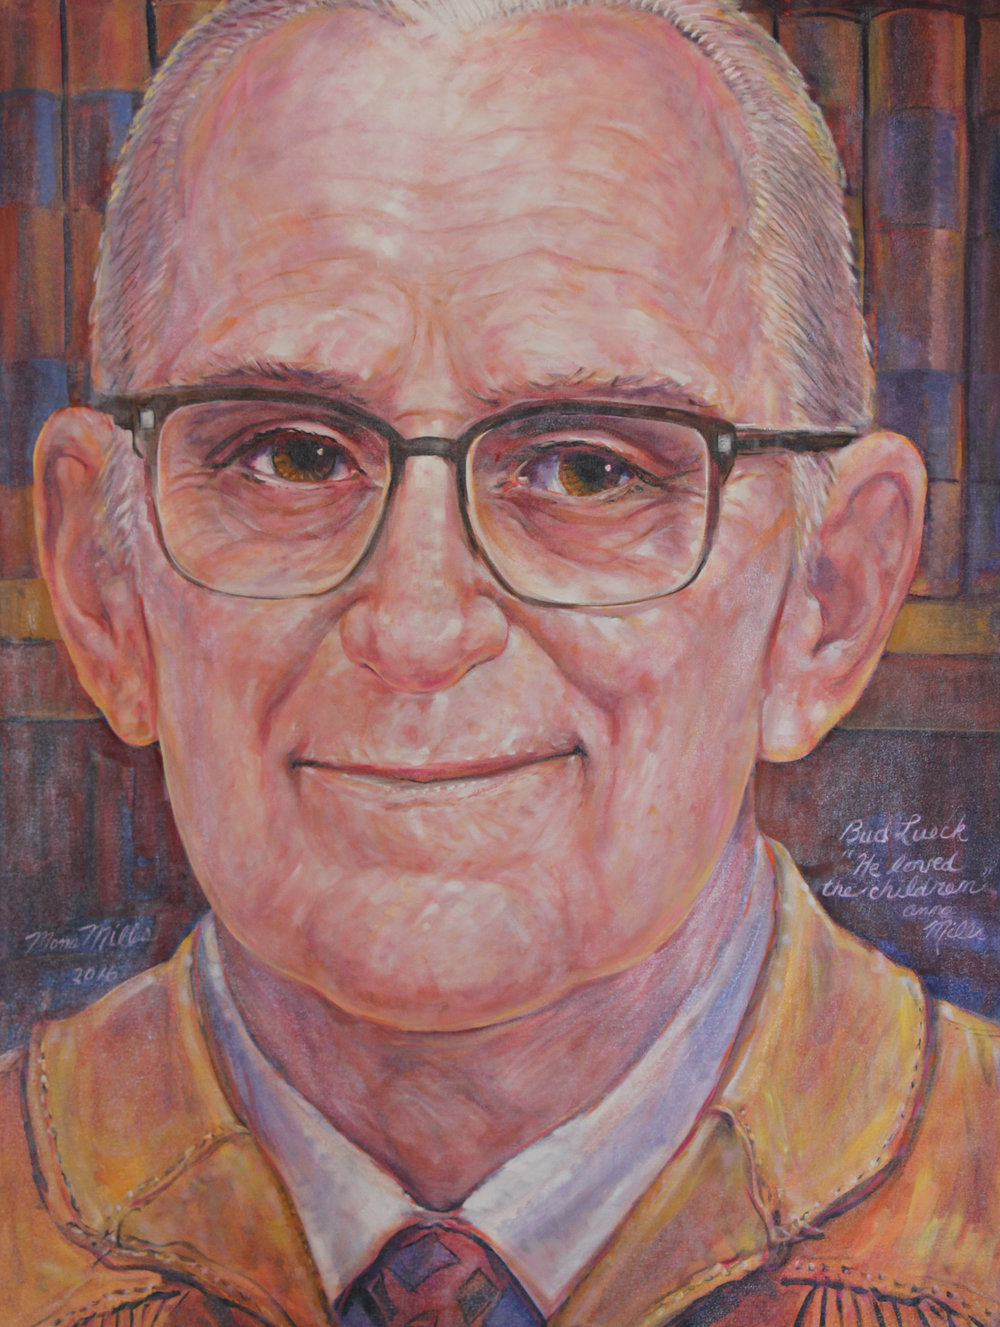 Painting of Bud Lueck by Mona Mills